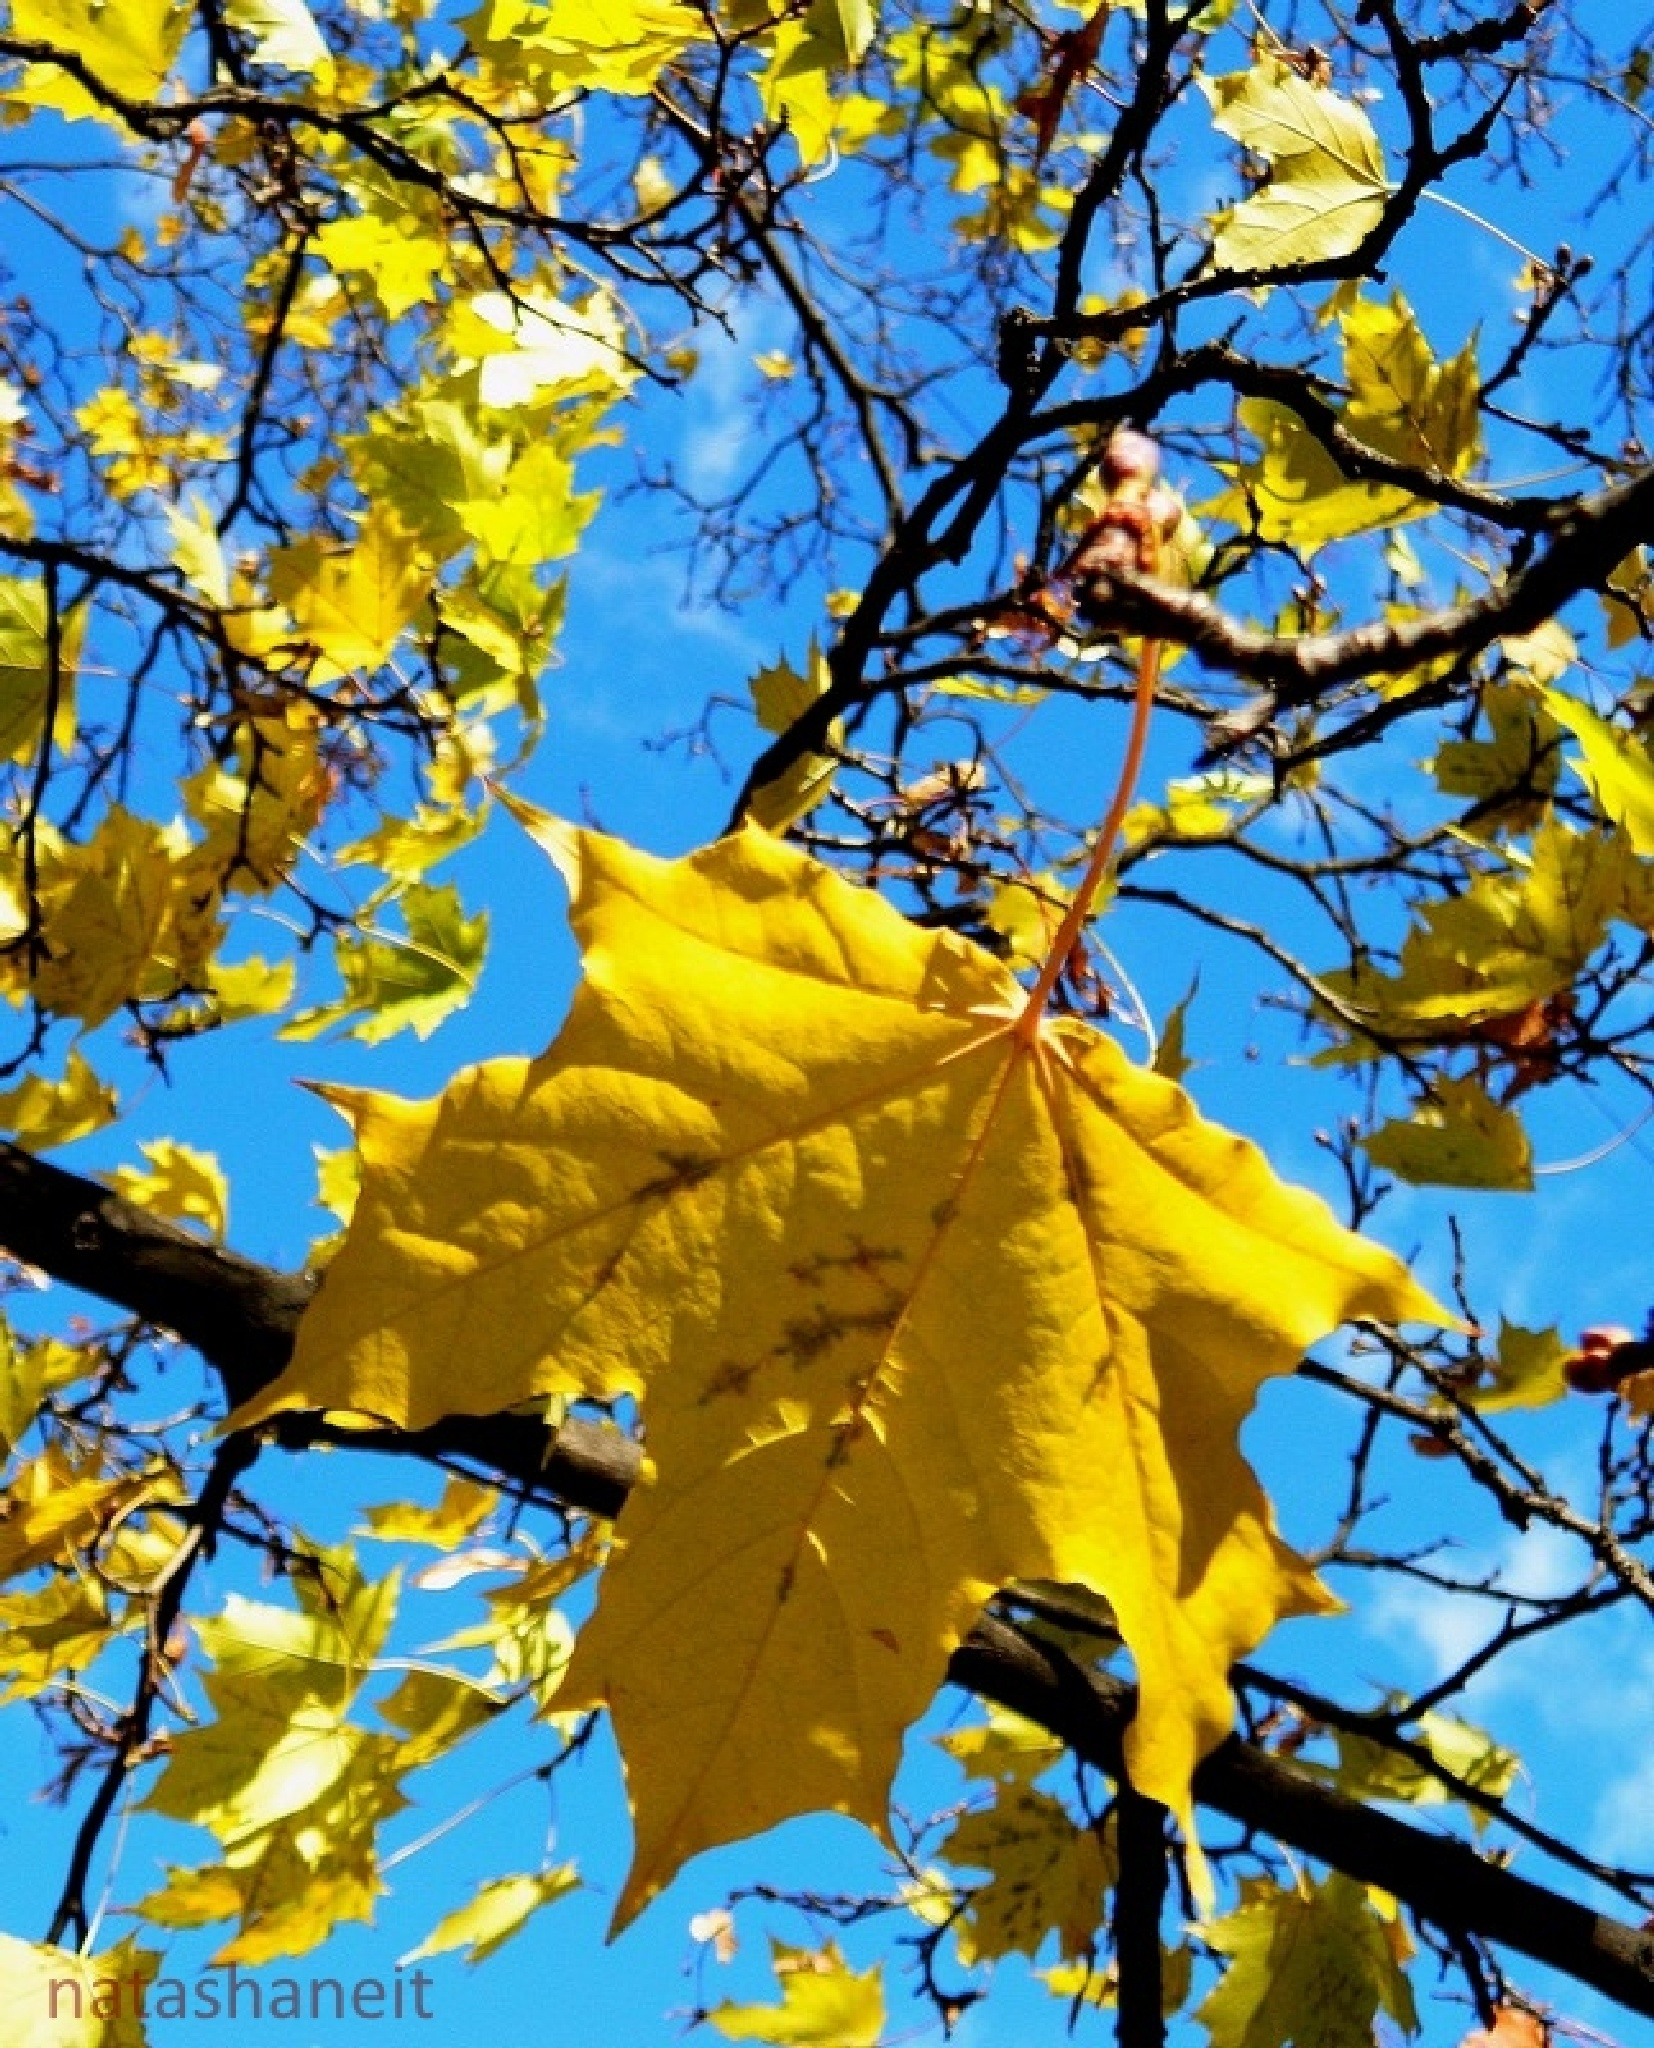 Maple leaves against the blue sky by natashaneit